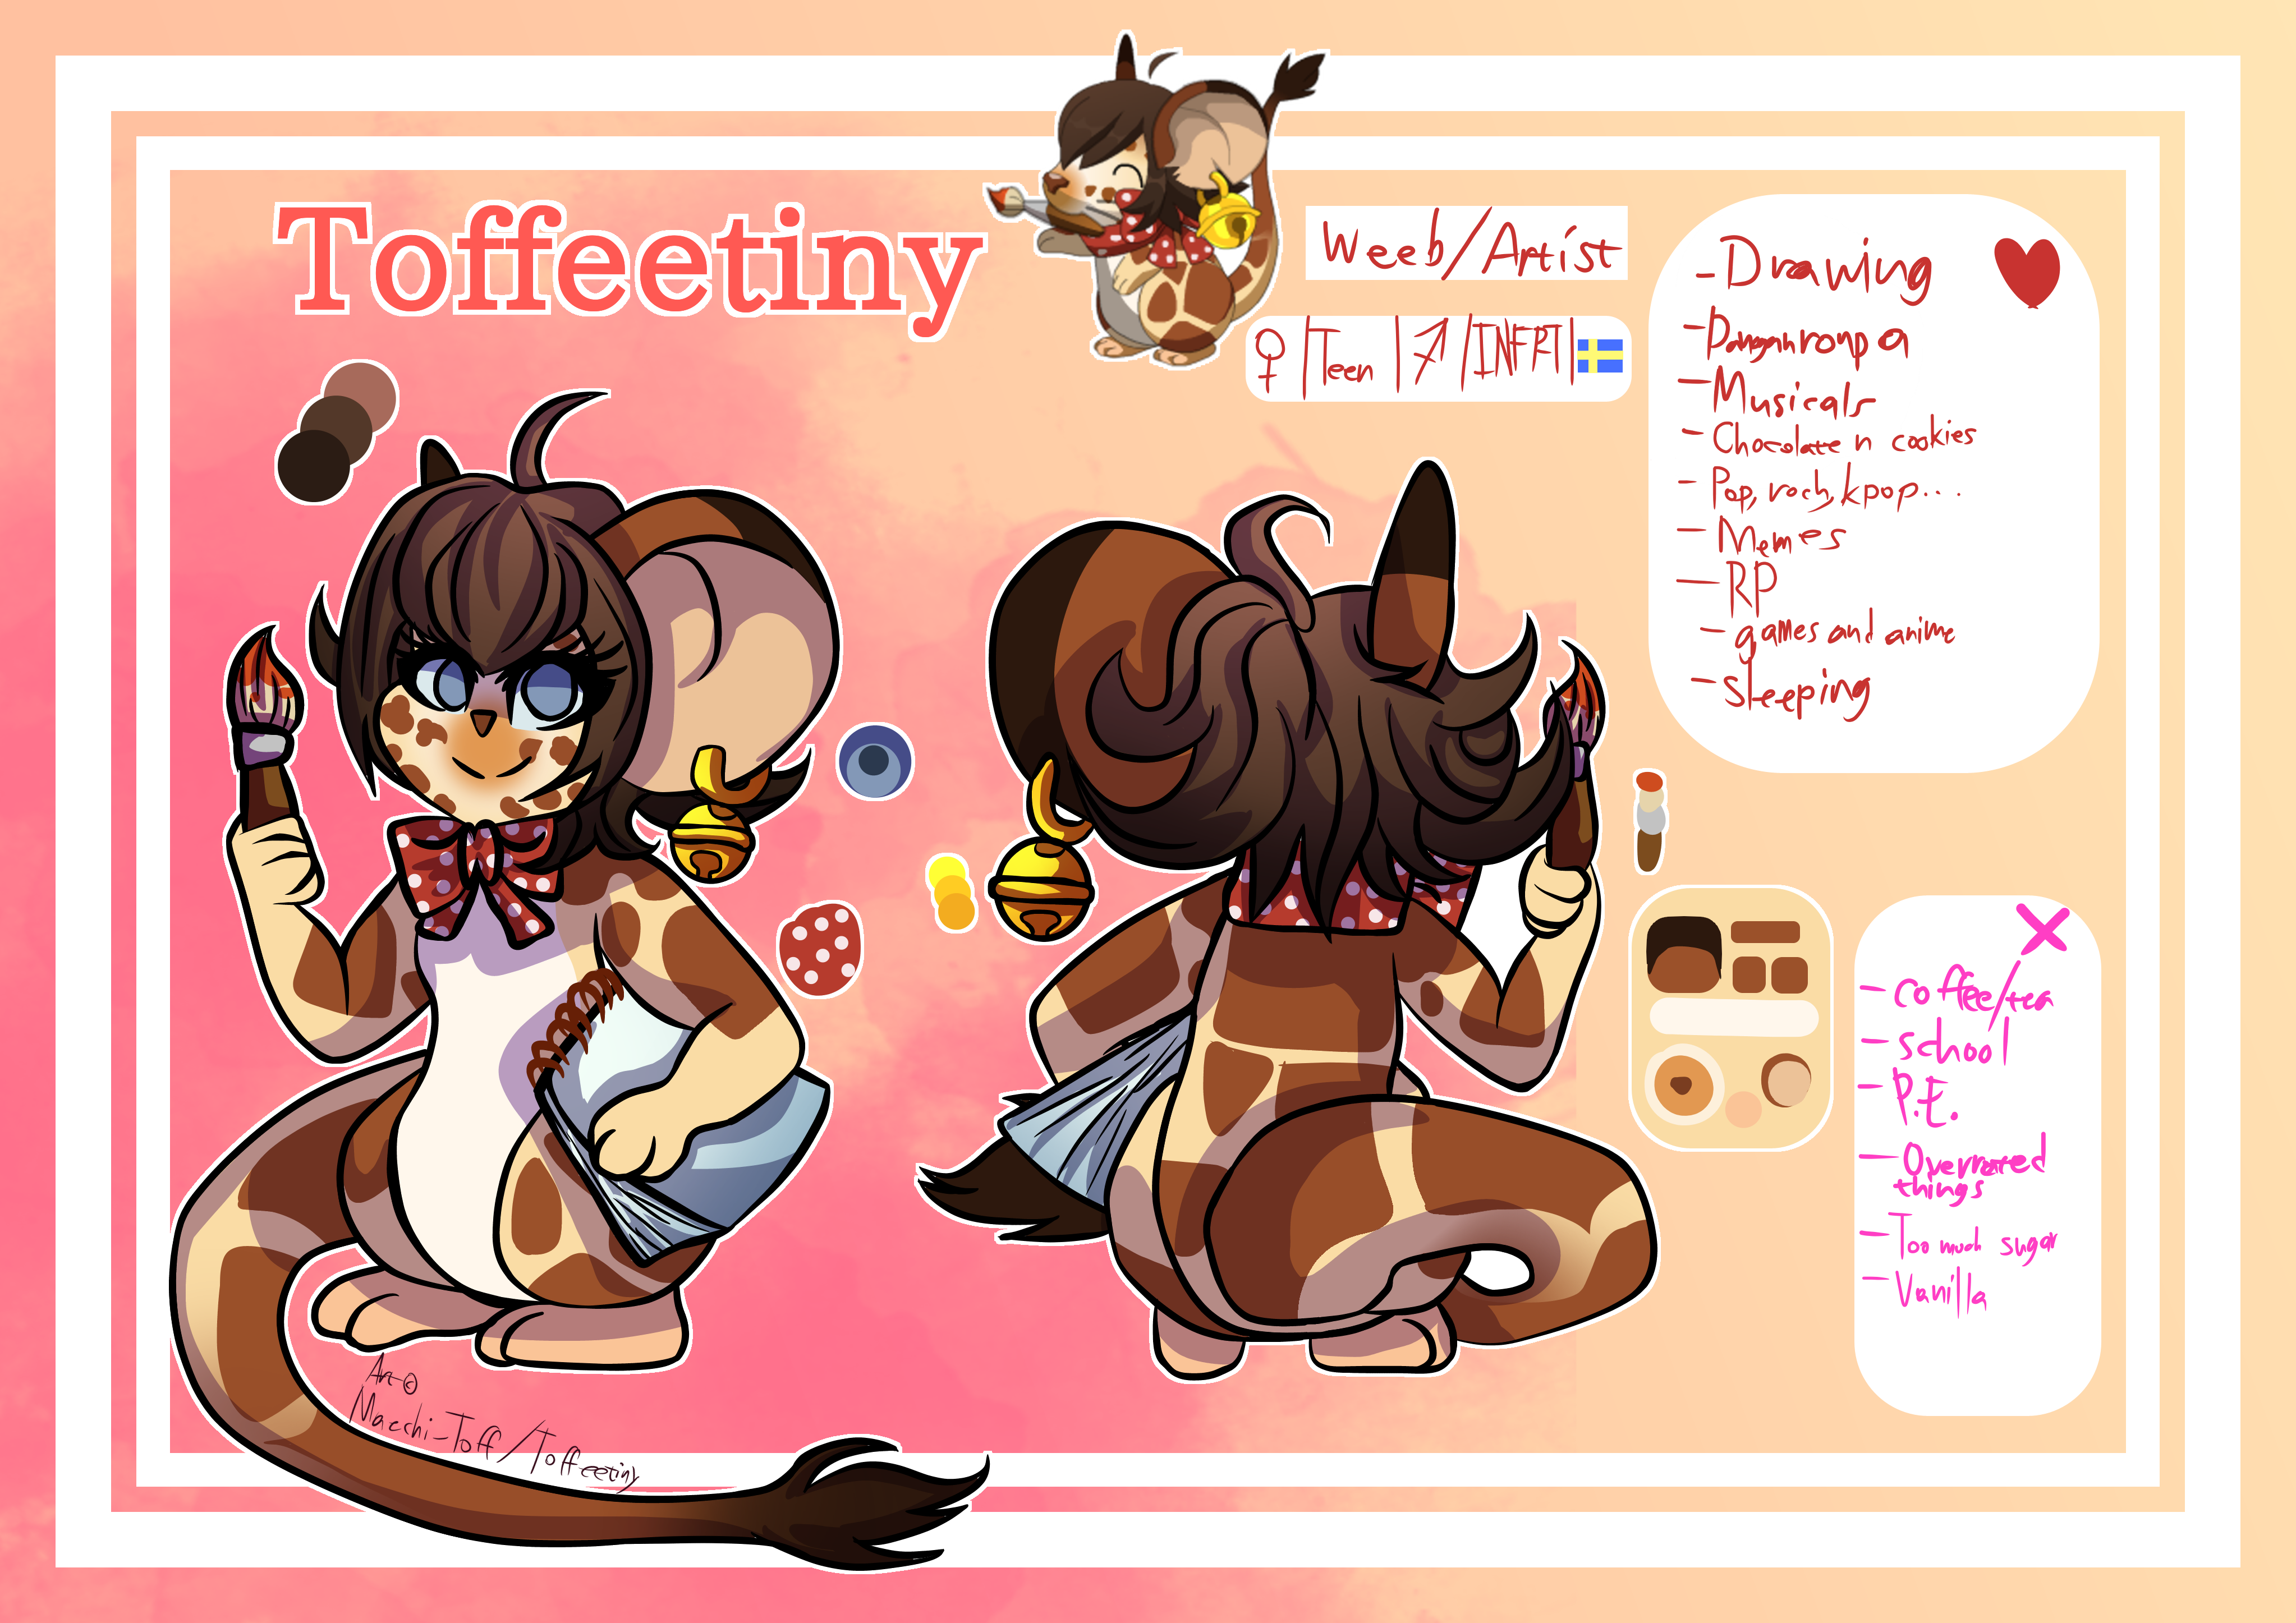 [TFM Mouse] Toffeetiny Handrawn Ref Sheet 2018 by Maechi-Toff